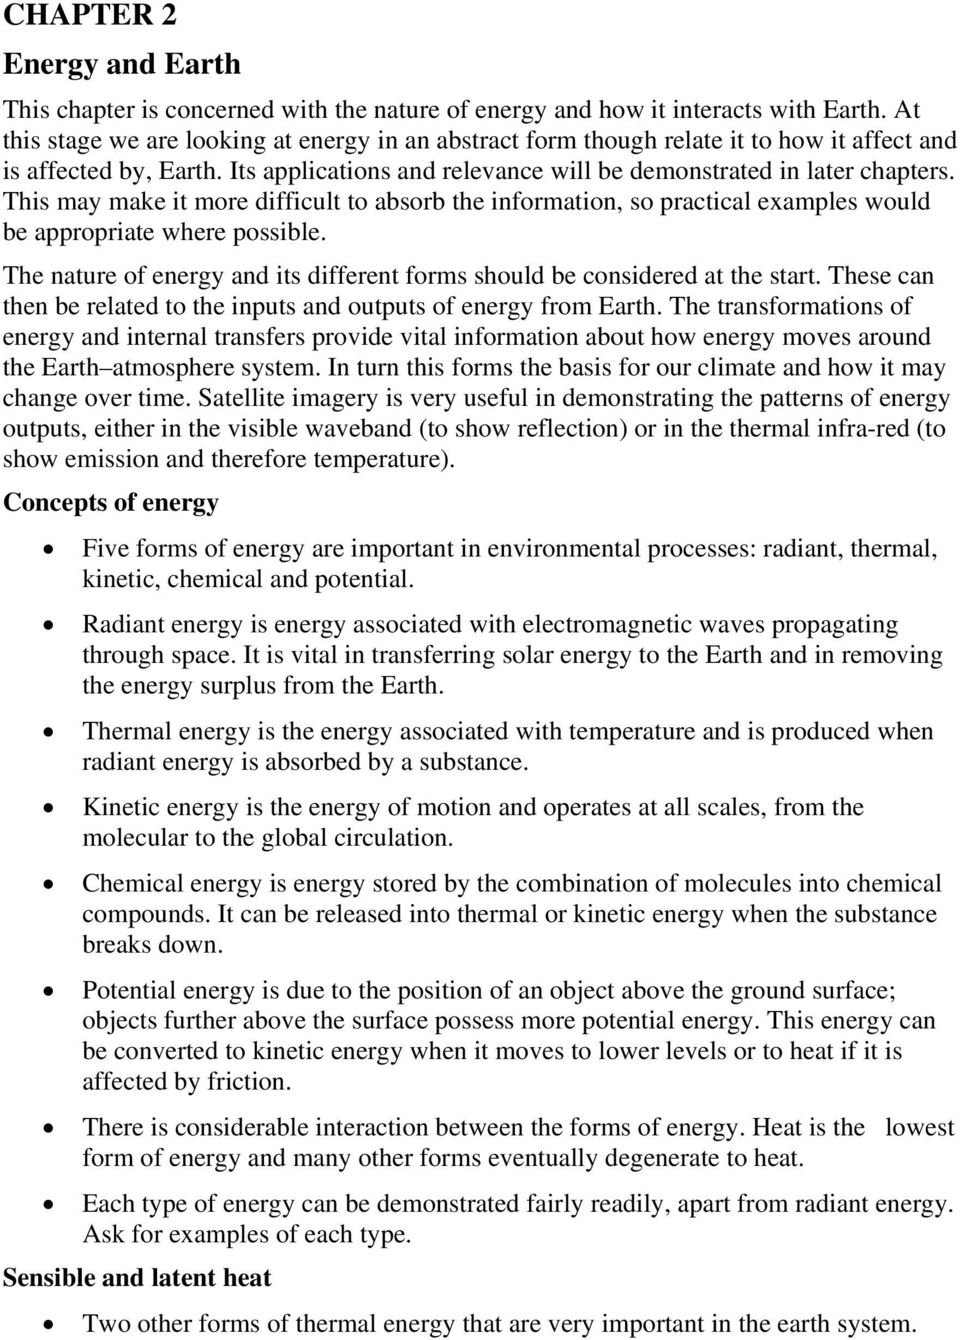 This may make it more difficult to absorb the information, so practical examples would be appropriate where possible. The nature of energy and its different forms should be considered at the start.